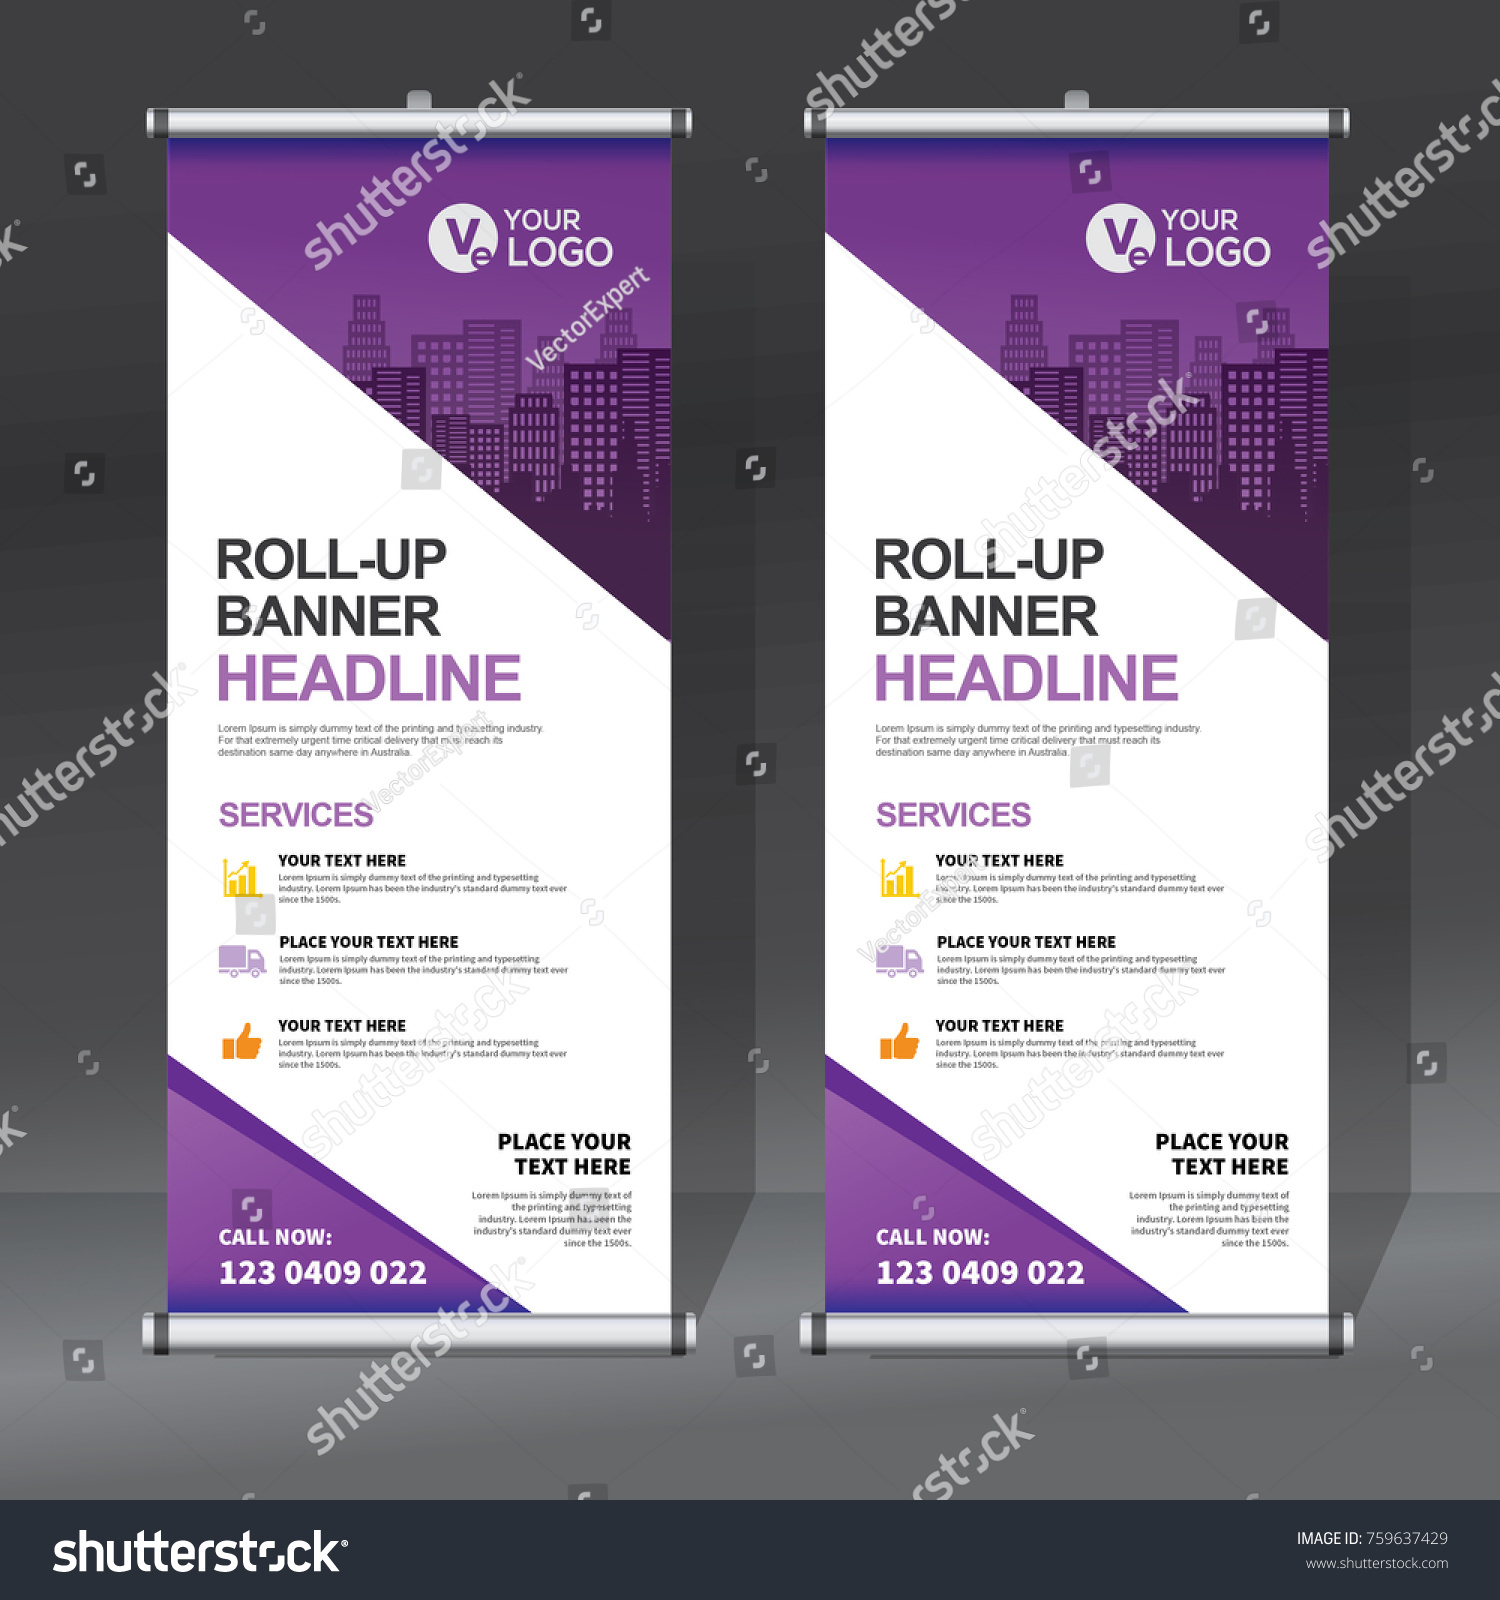 Contoh Desain Backdrop Roll Banner Design Template Abstract Background Stock Vector